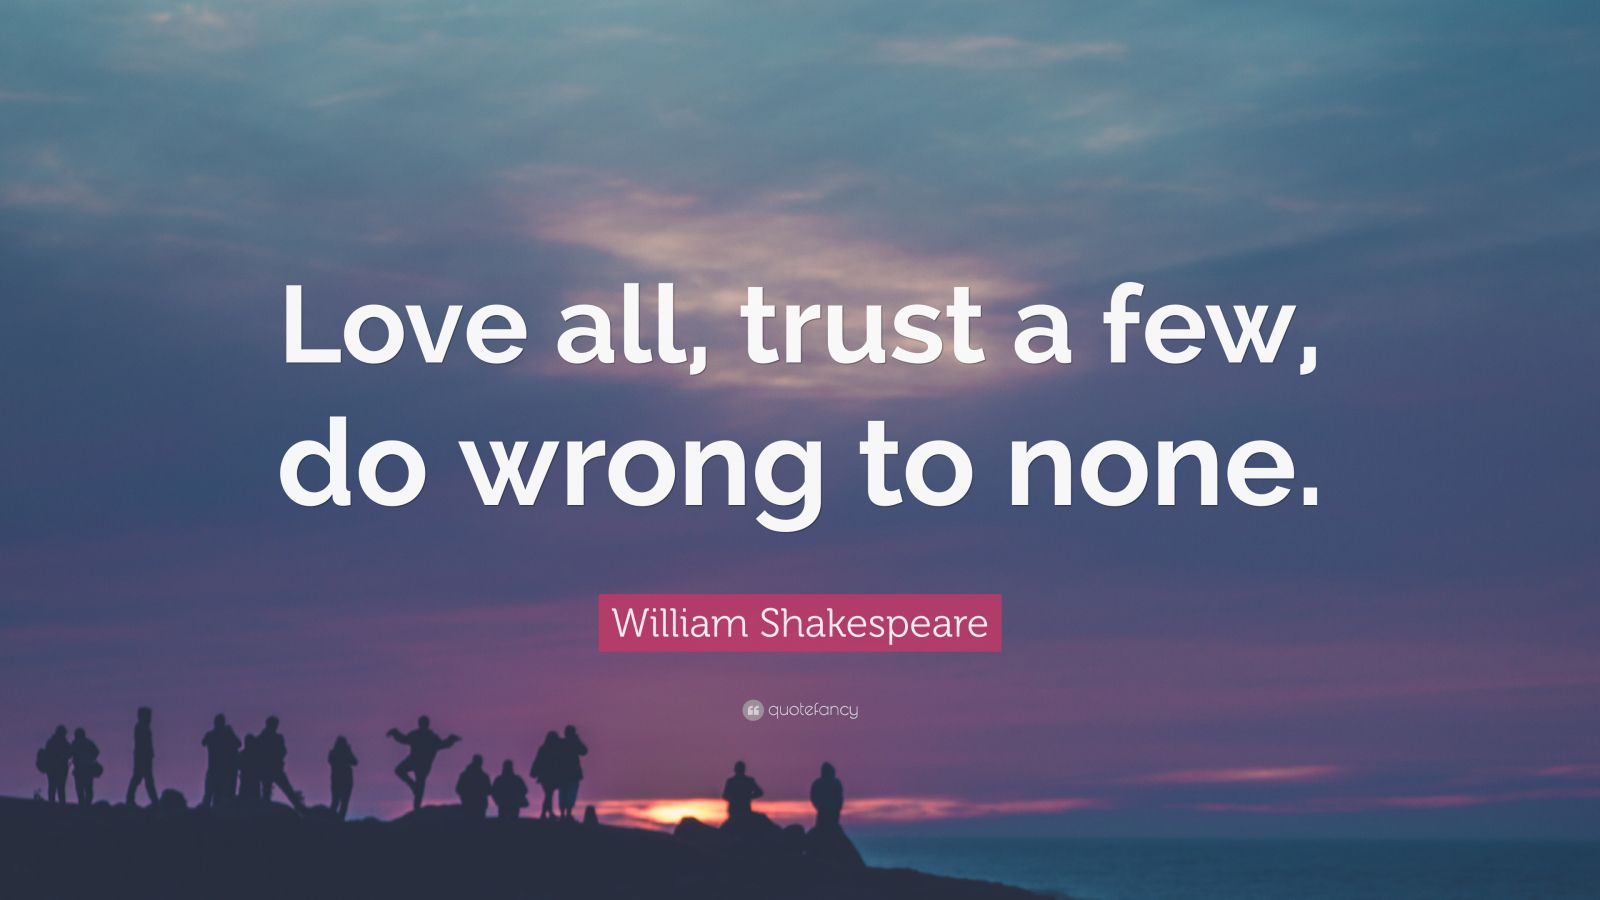 Shakespeare In Love Quotes William Shakespeare Quotes 100 Wallpapers  Quotefancy